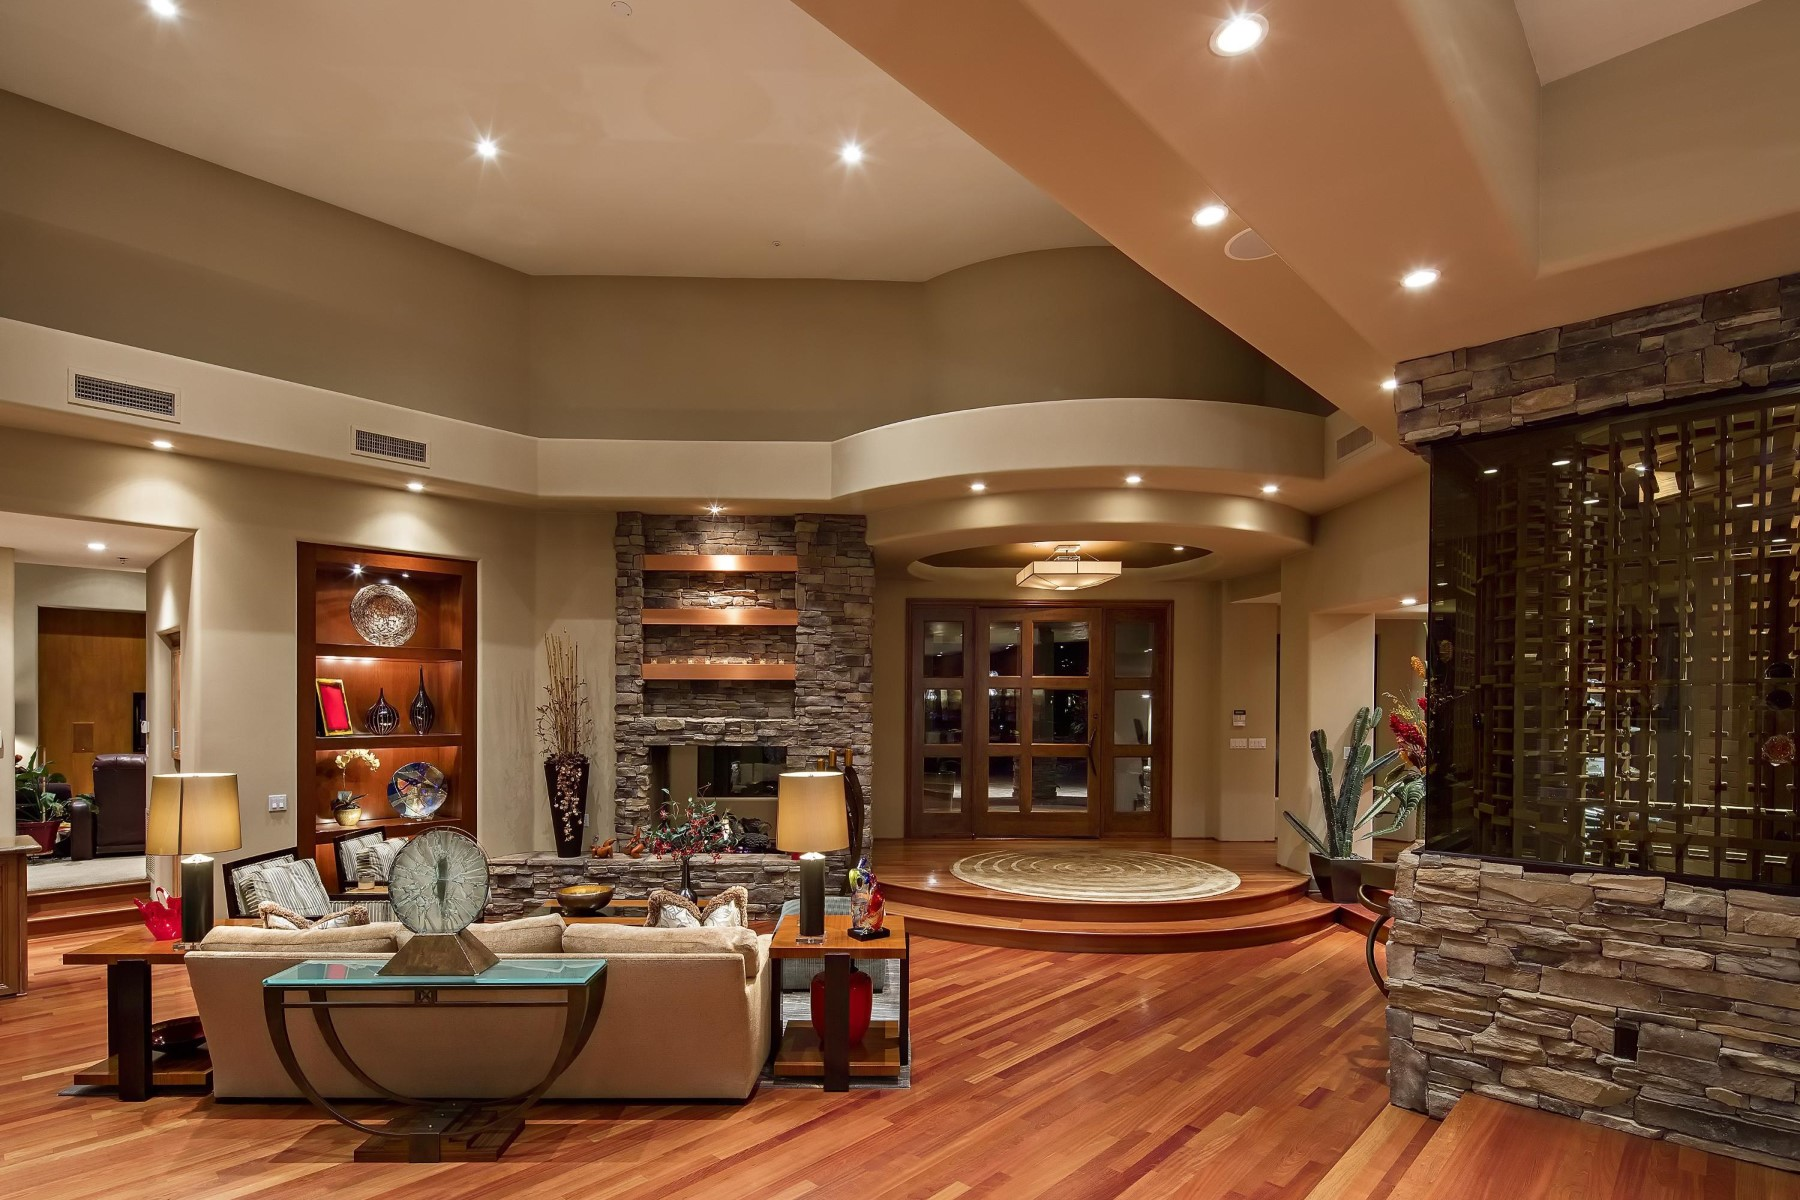 Single Family Home for Sale at Stunning custom home built by the legendary Homes by Simmons 29575 N 111th Way Scottsdale, Arizona 85262 United States